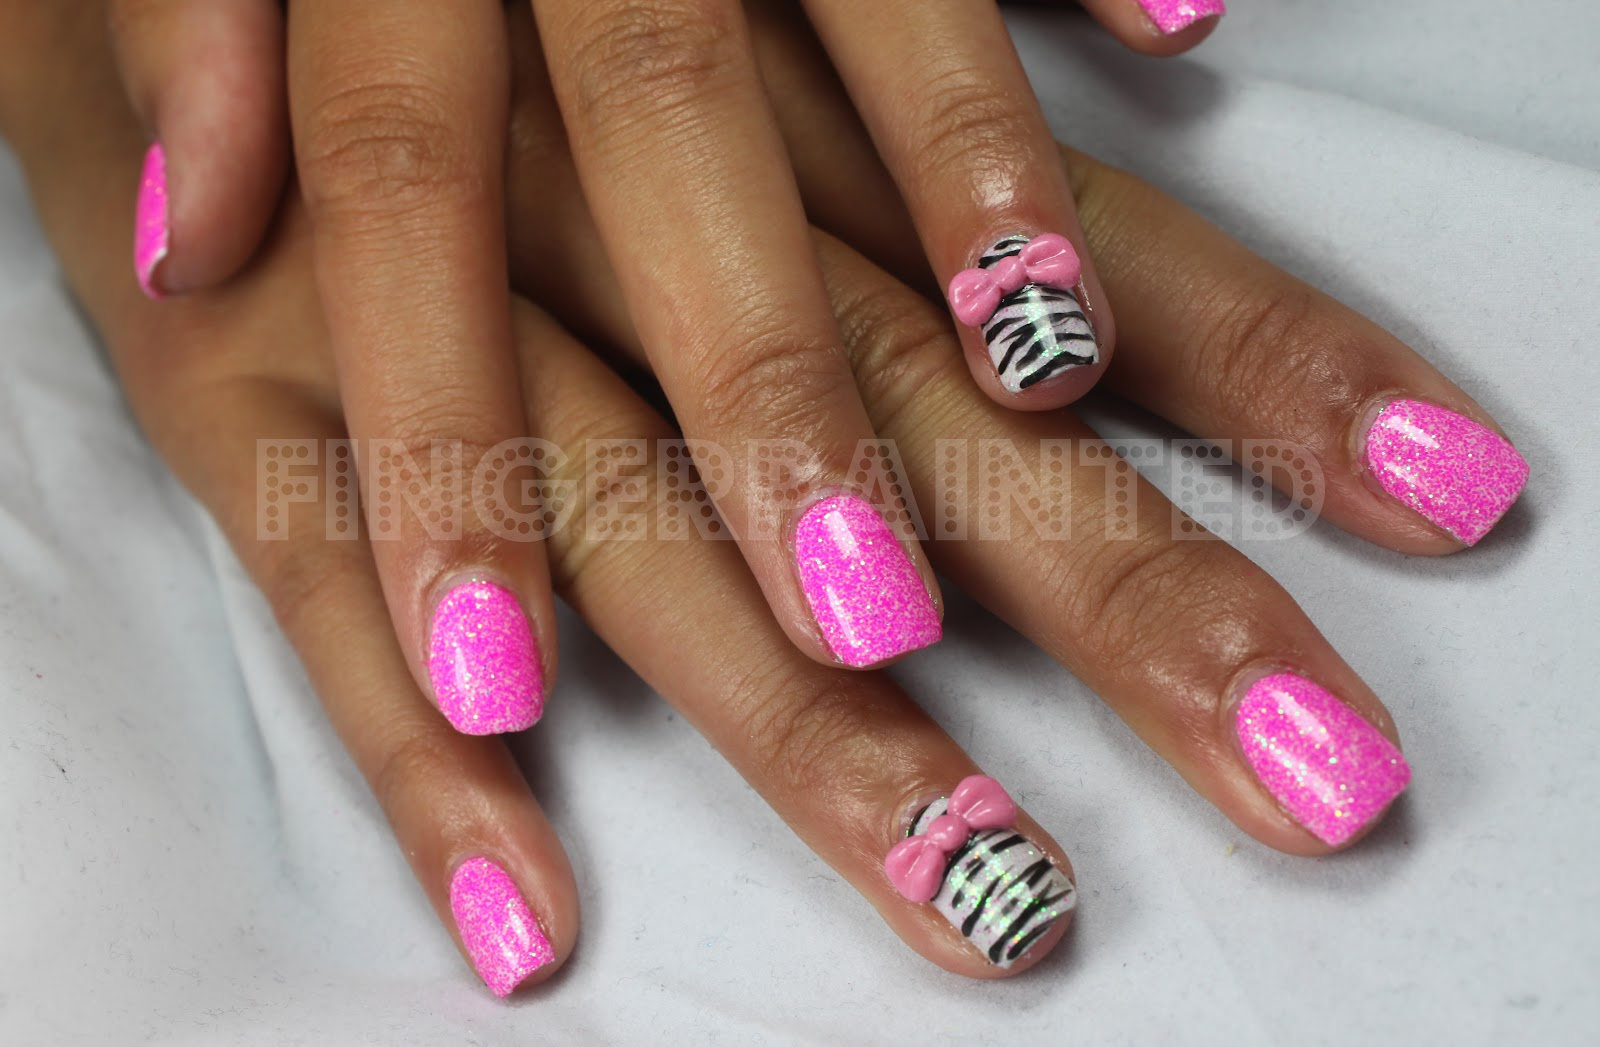 Nail Design With Bows | Nail Designs, Hair Styles, Tattoos and Fashion